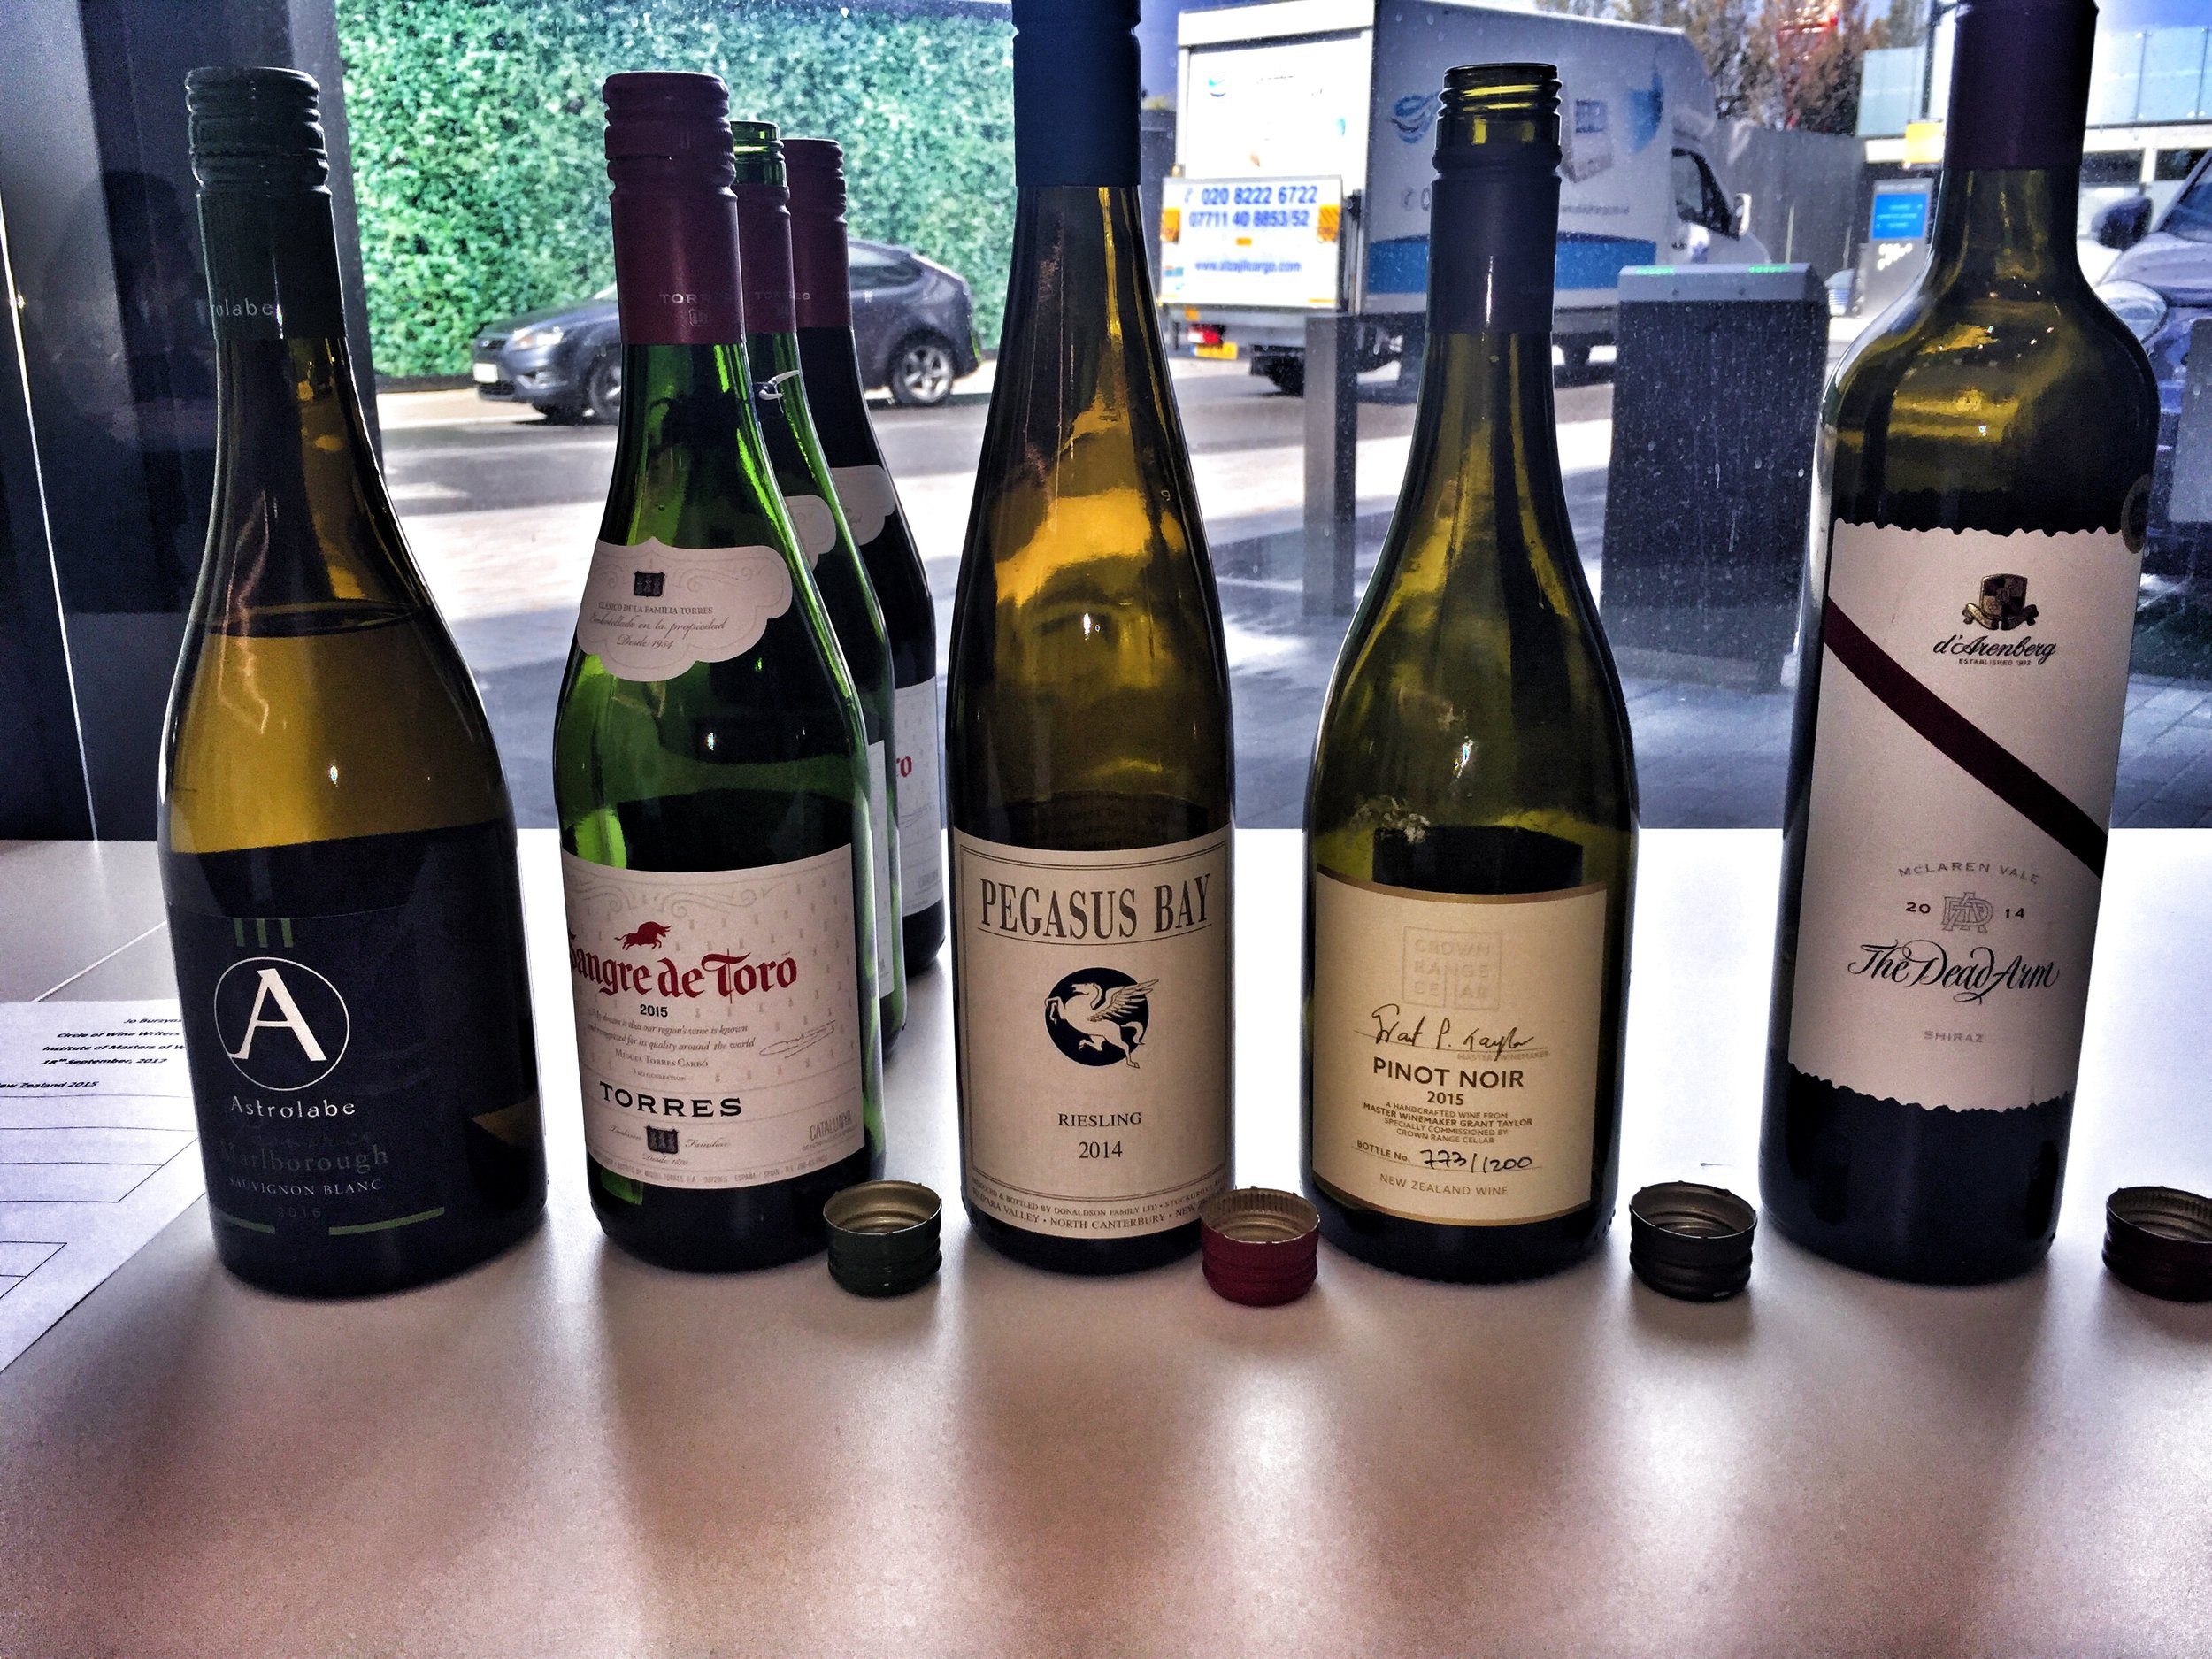 Wines tasted with music tracks as part of Jo Burzysnka's Wine and Sound Seminar (Photo credits: Sumi_Sumilier)